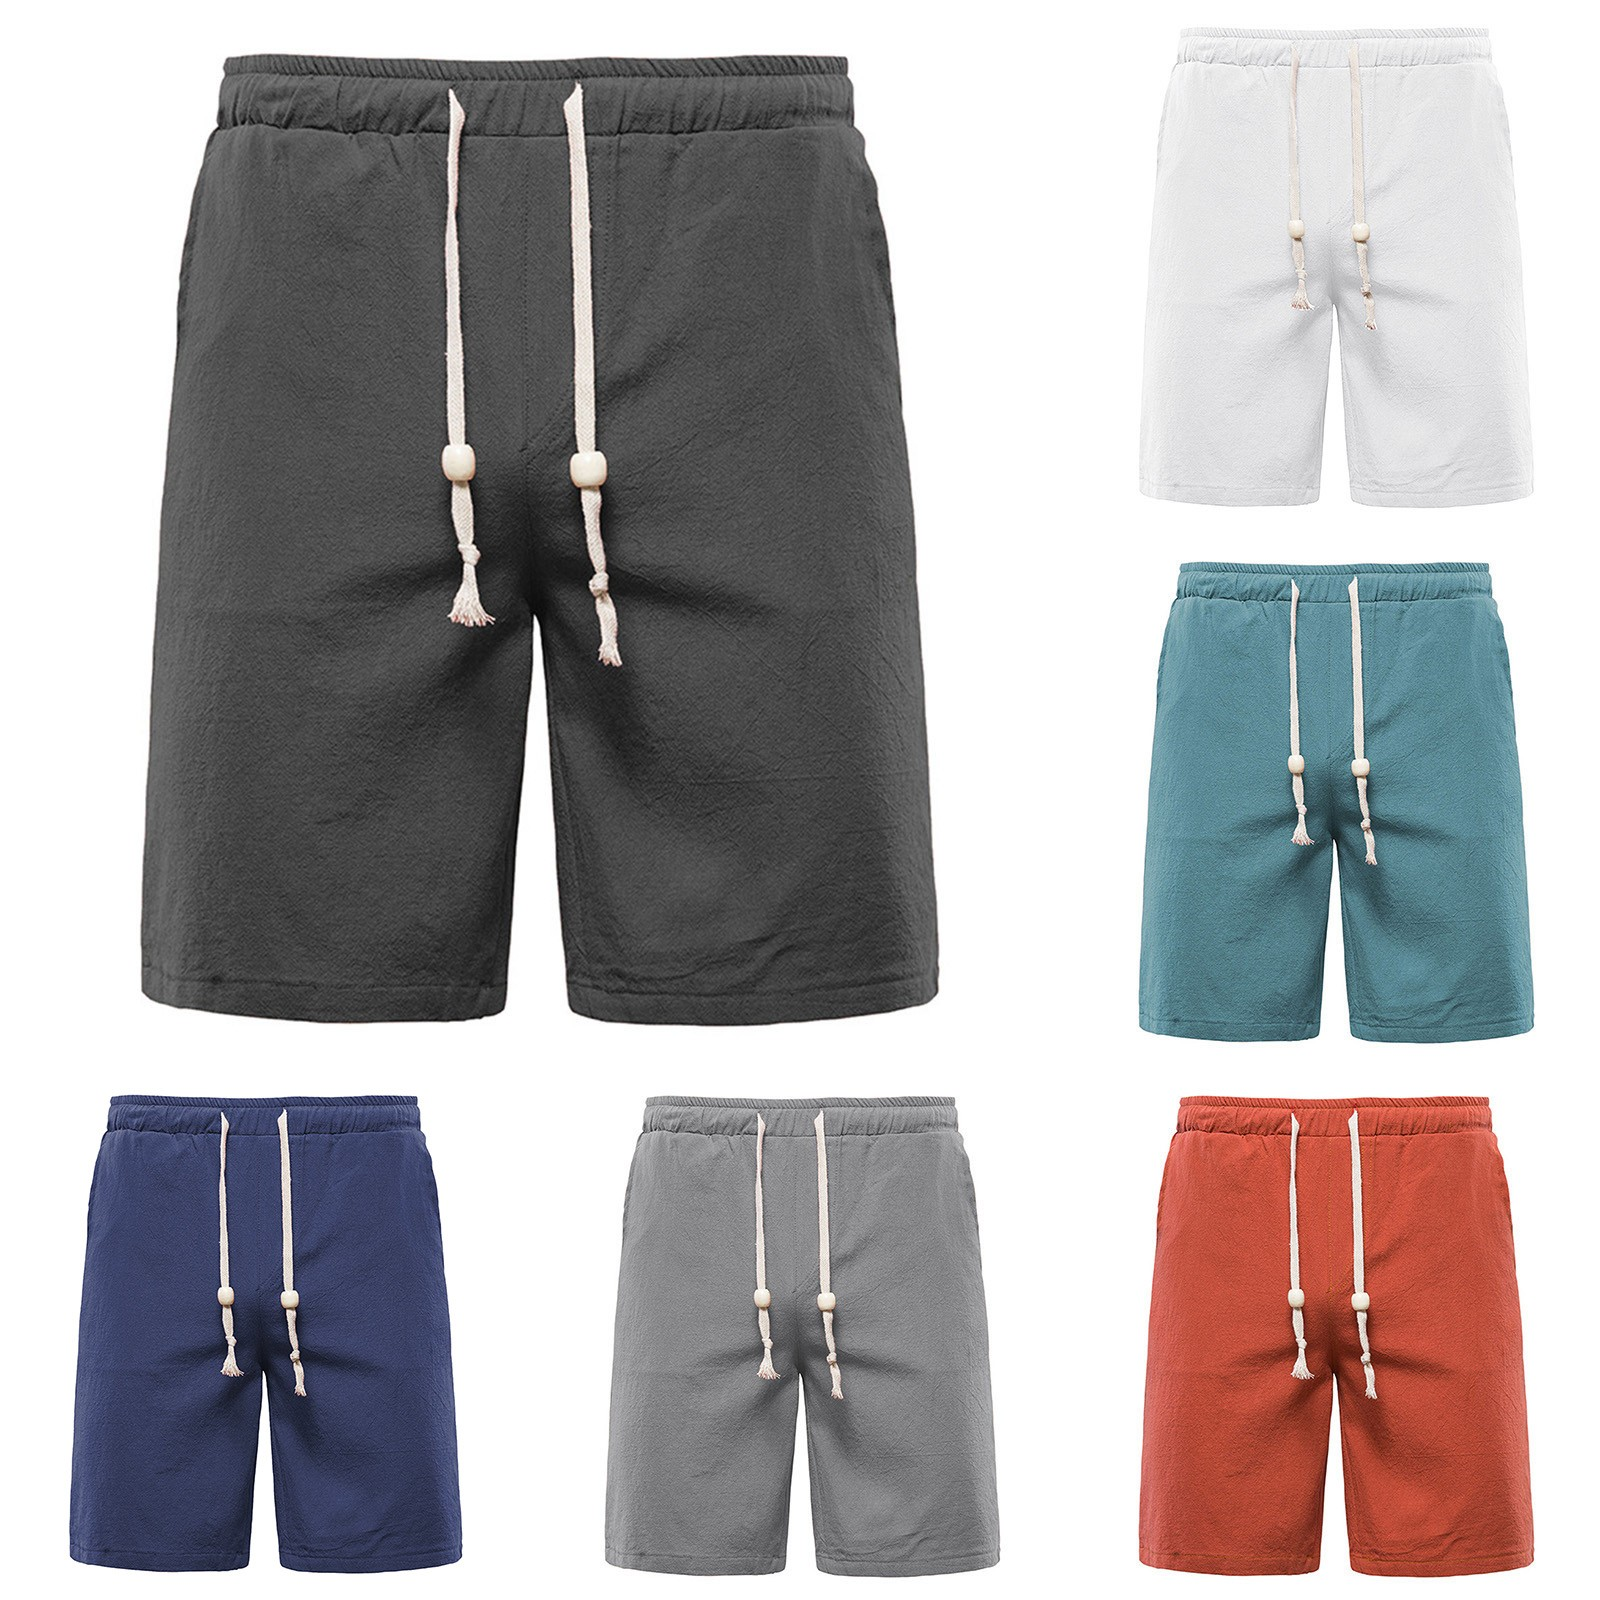 2021 Running Shorts Men Fitness Gym Training Sports Shorts Quick Dry Workout Gym Sport Jogging solid color Summer Men Shorts 1